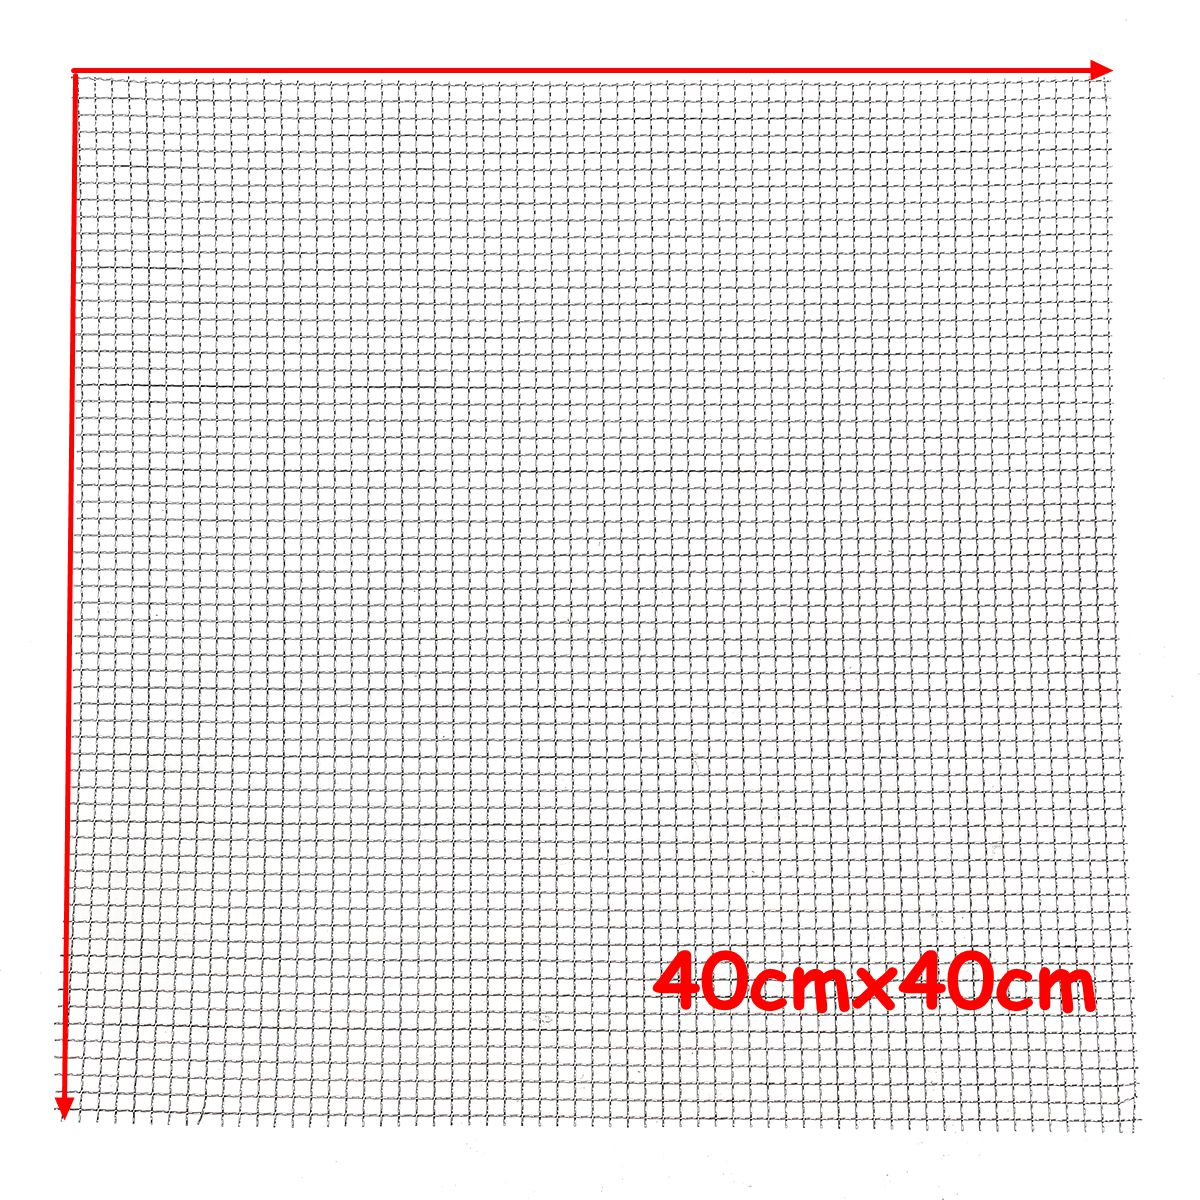 NEW Stainless Steel 304 Mesh #4 .047 Wire Cloth Screen Filter 16''x16'' 40cm x 40cm high quality portable mini photo studio box photography backdrop built in light photo box